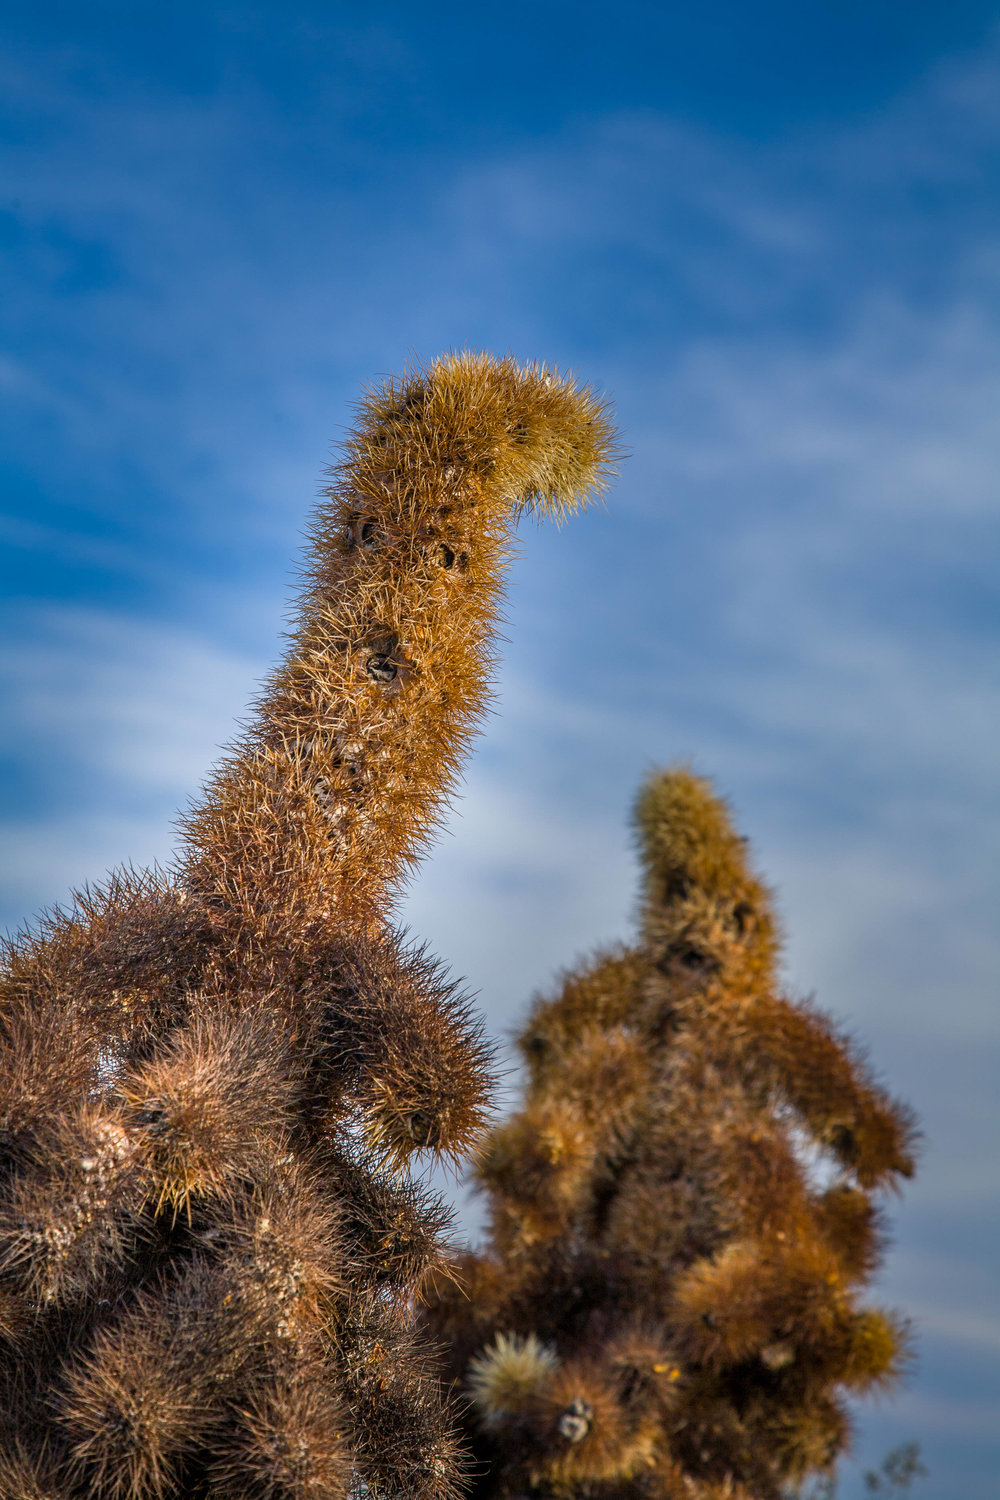 Untitled Cactus   People  2006, Joshua Tree, California. Digital Capture Signed Limited Edition of 20    ORDER OR INQUIRE